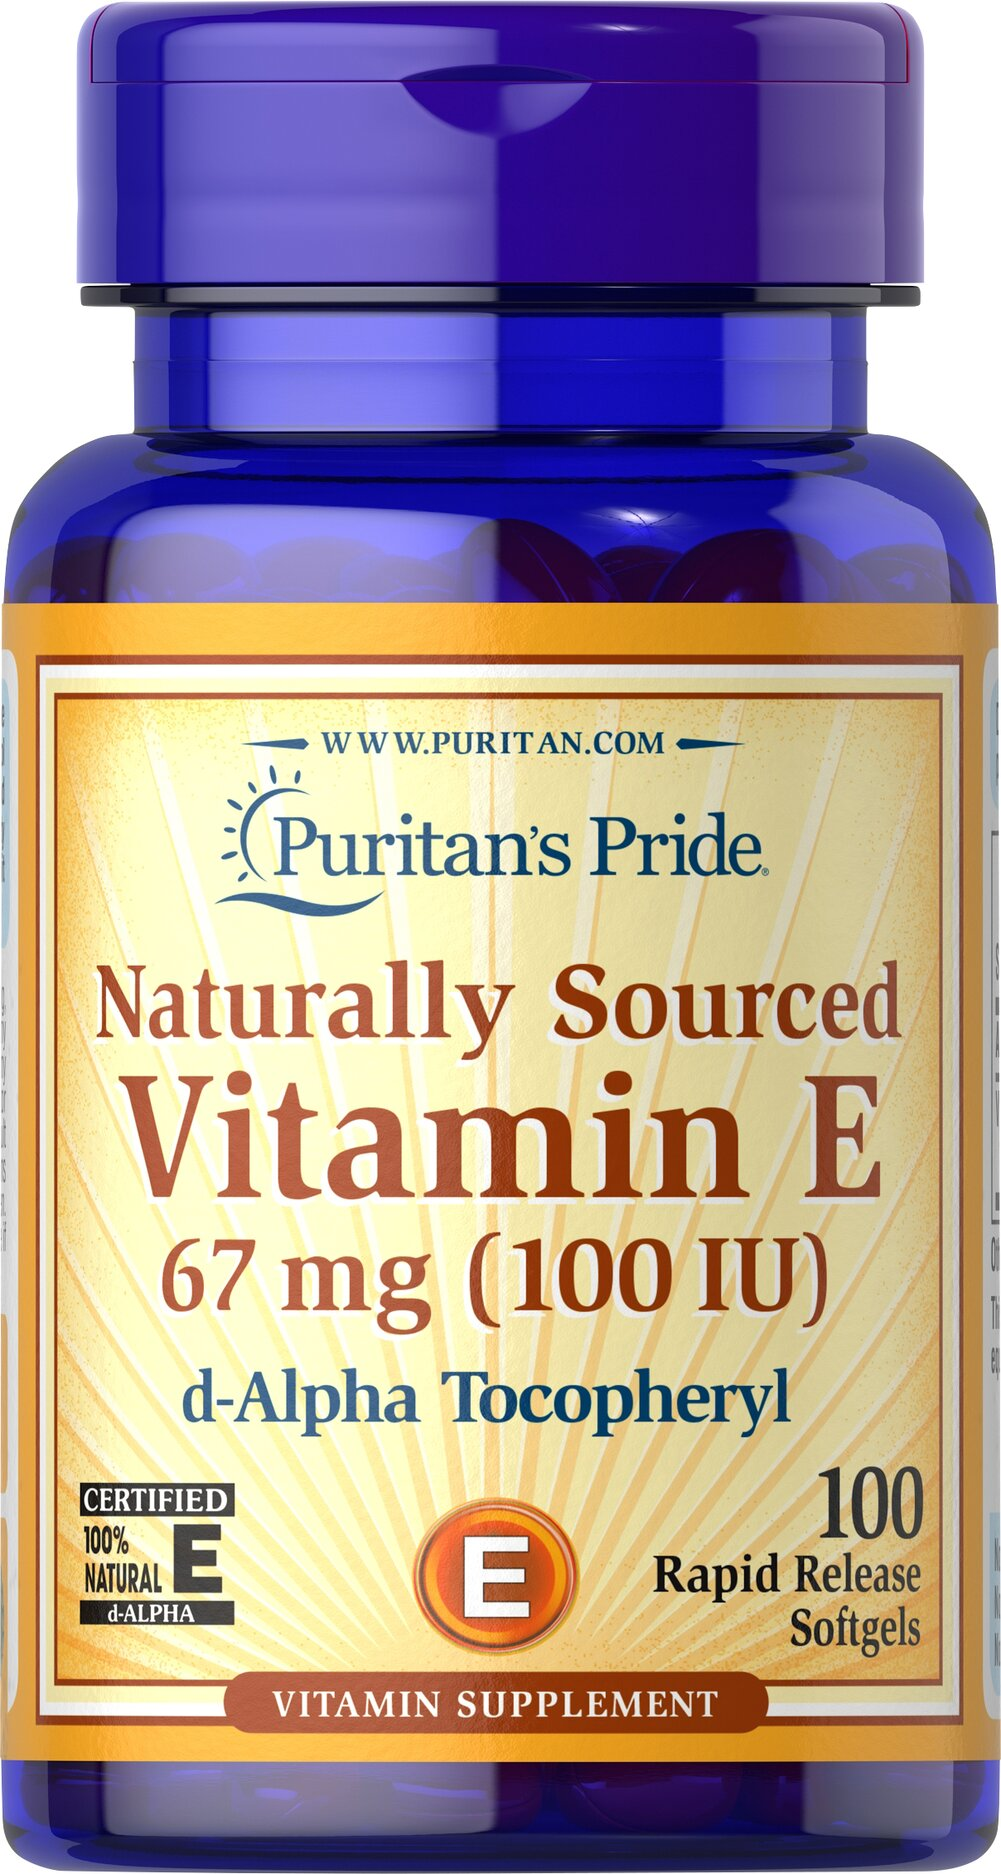 Vitamin E-100 iu 100% Natural <p><strong>Vitamin E</strong> is a potent antioxidant that helps fight free radicals.** Studies have shown that oxidative stress caused by free radicals may contribute to the premature aging of cells.** Vitamin E also promotes immune function and helps support cardiovascular health.** Our Vitamin E is 100% natural and comes in a convenient to use softgel.</p> 100 Softgels 100 IU $7.99